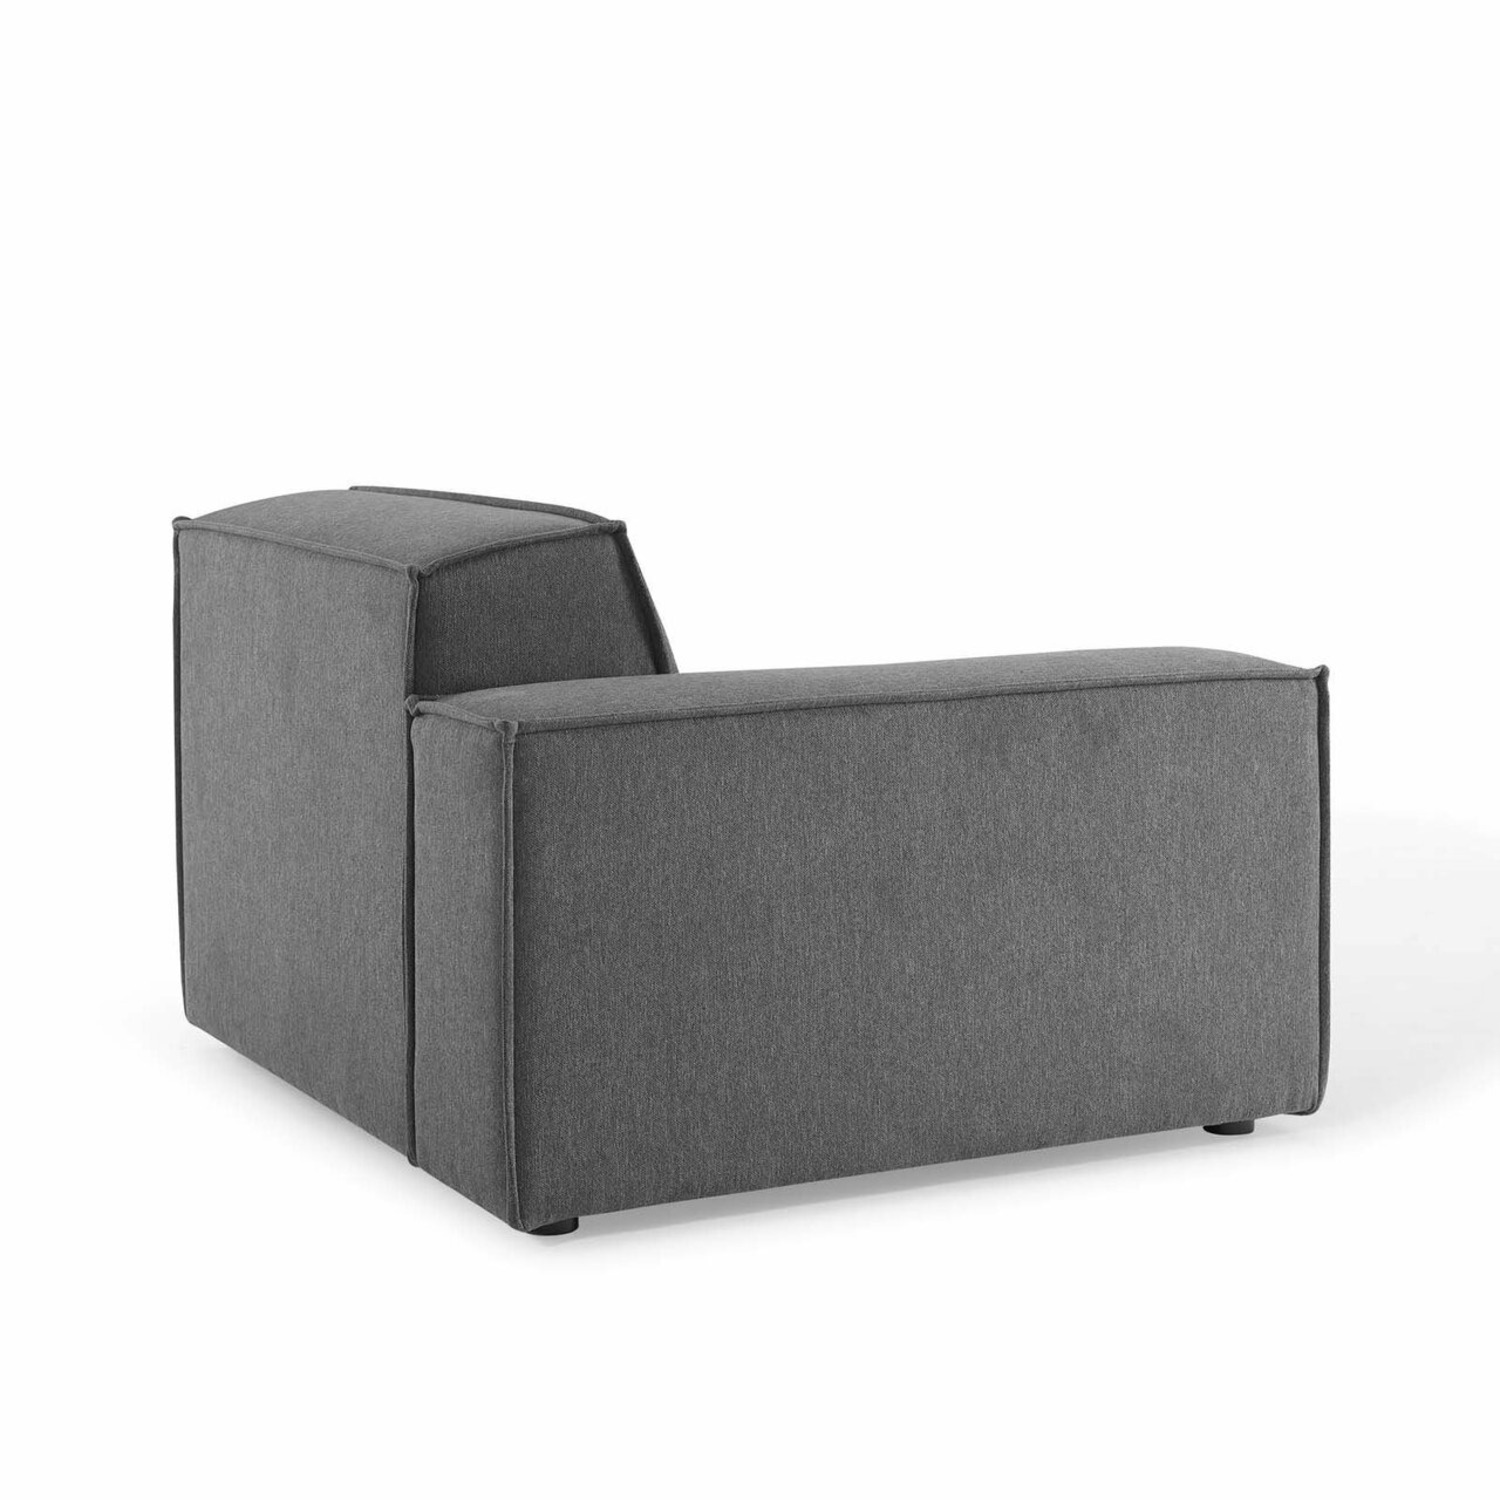 4-Piece Sectional Sofa In Charcoal Upholstery - image-7